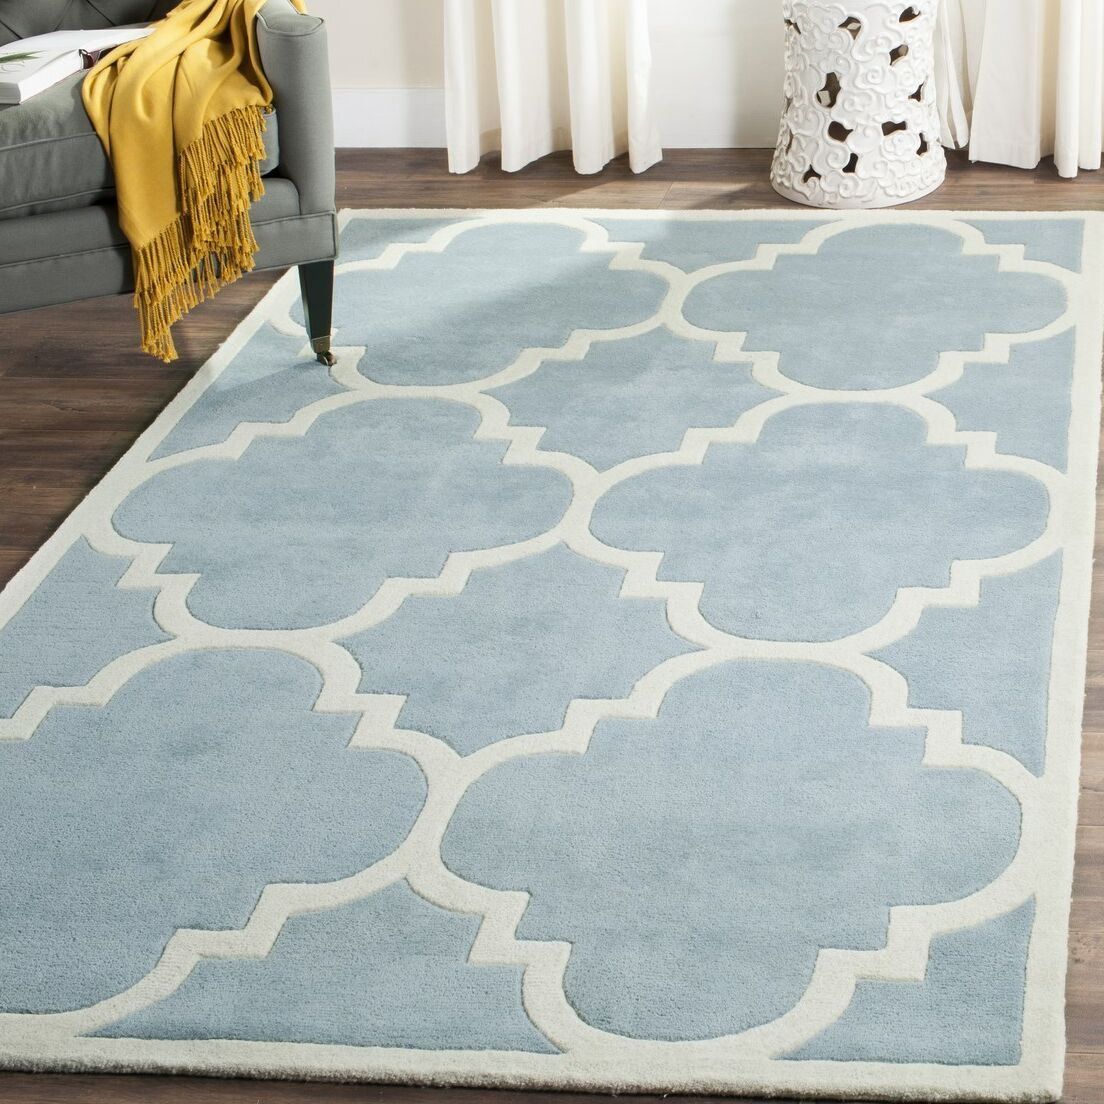 Wilkin Hand-Tufted Blue/Ivory Area Rug Rug Size: Rectangle 6' x 9'